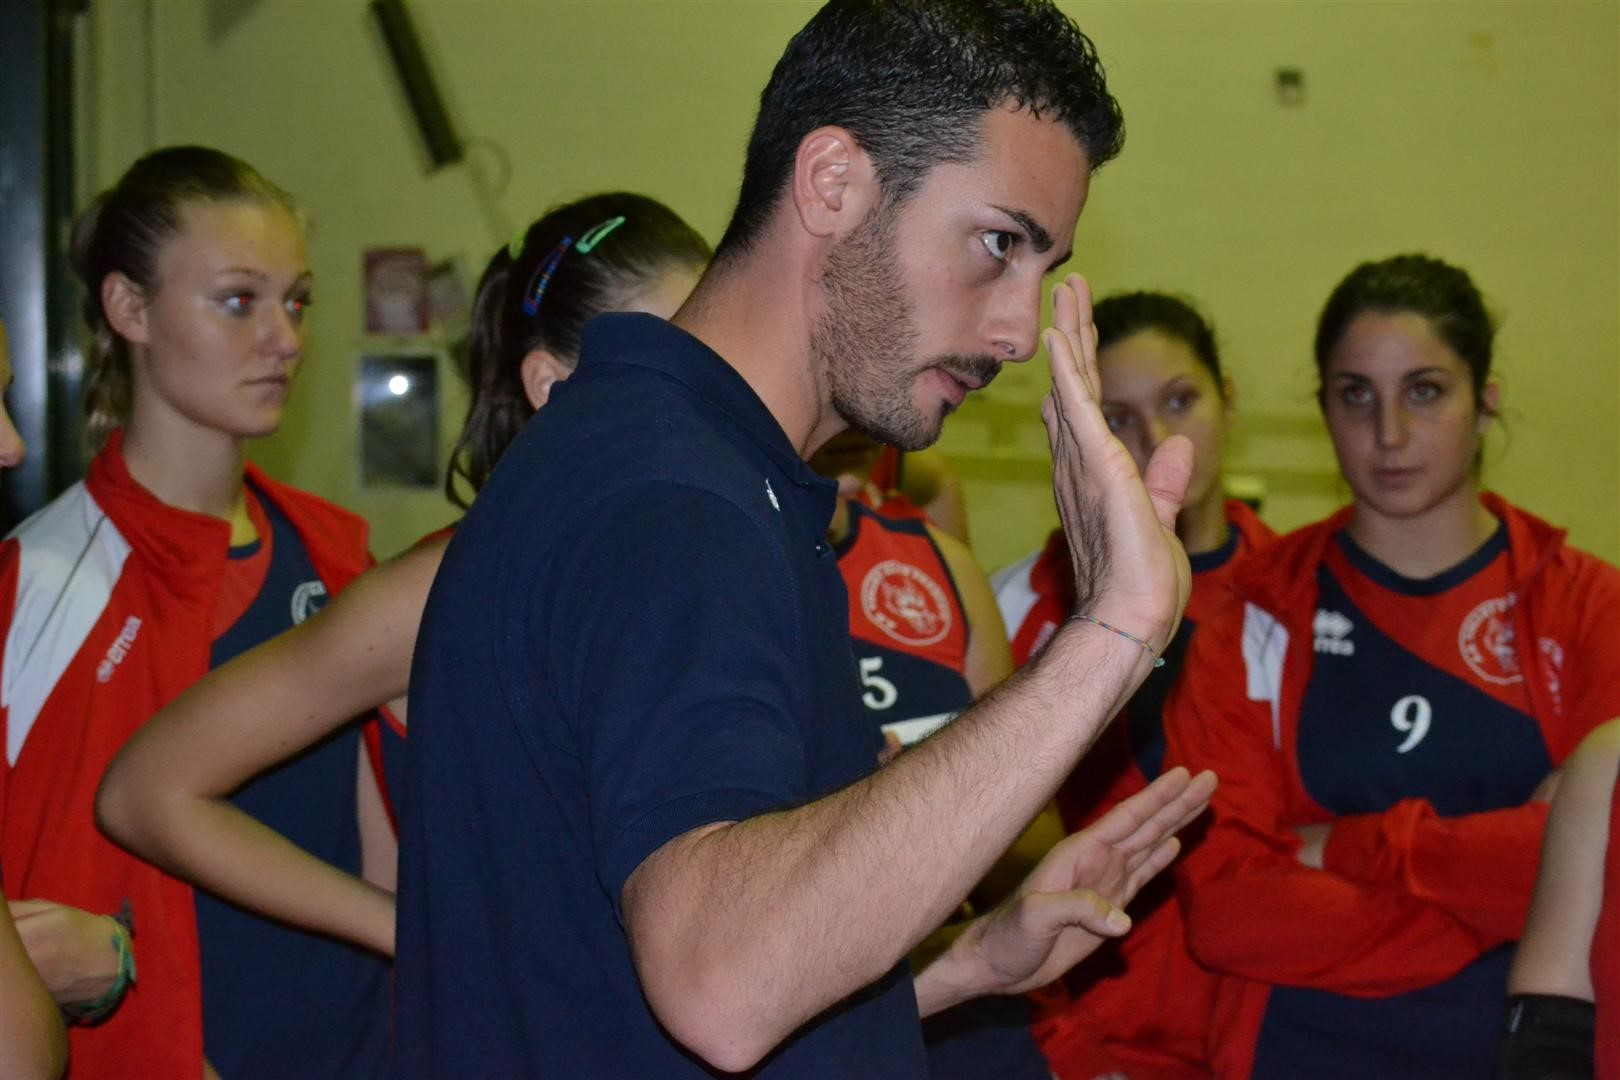 Dario De Notarpietro Volley Club Frascati